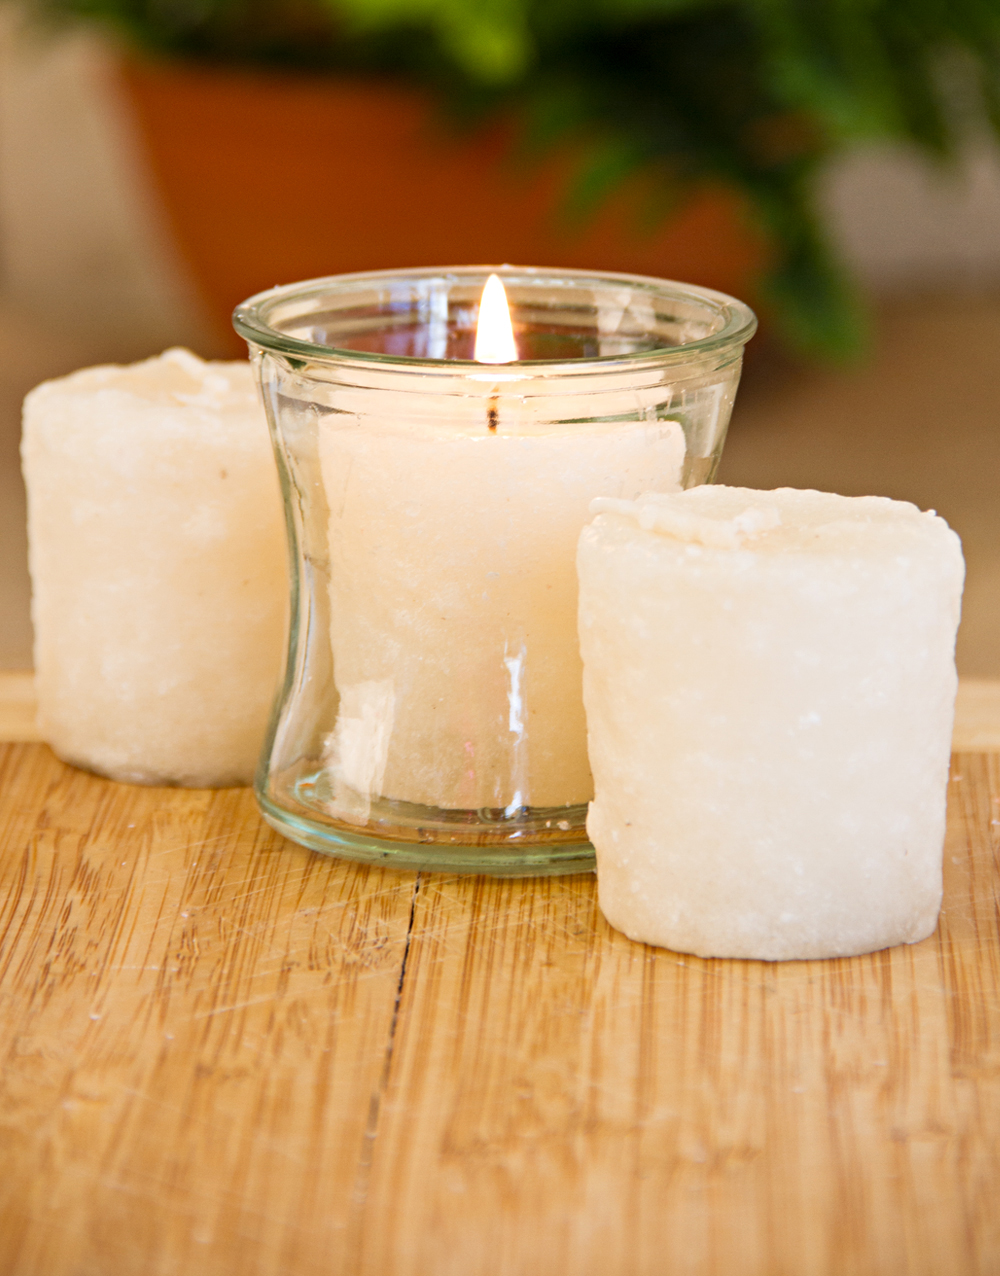 Country Spice 3 Pack Votive Candles